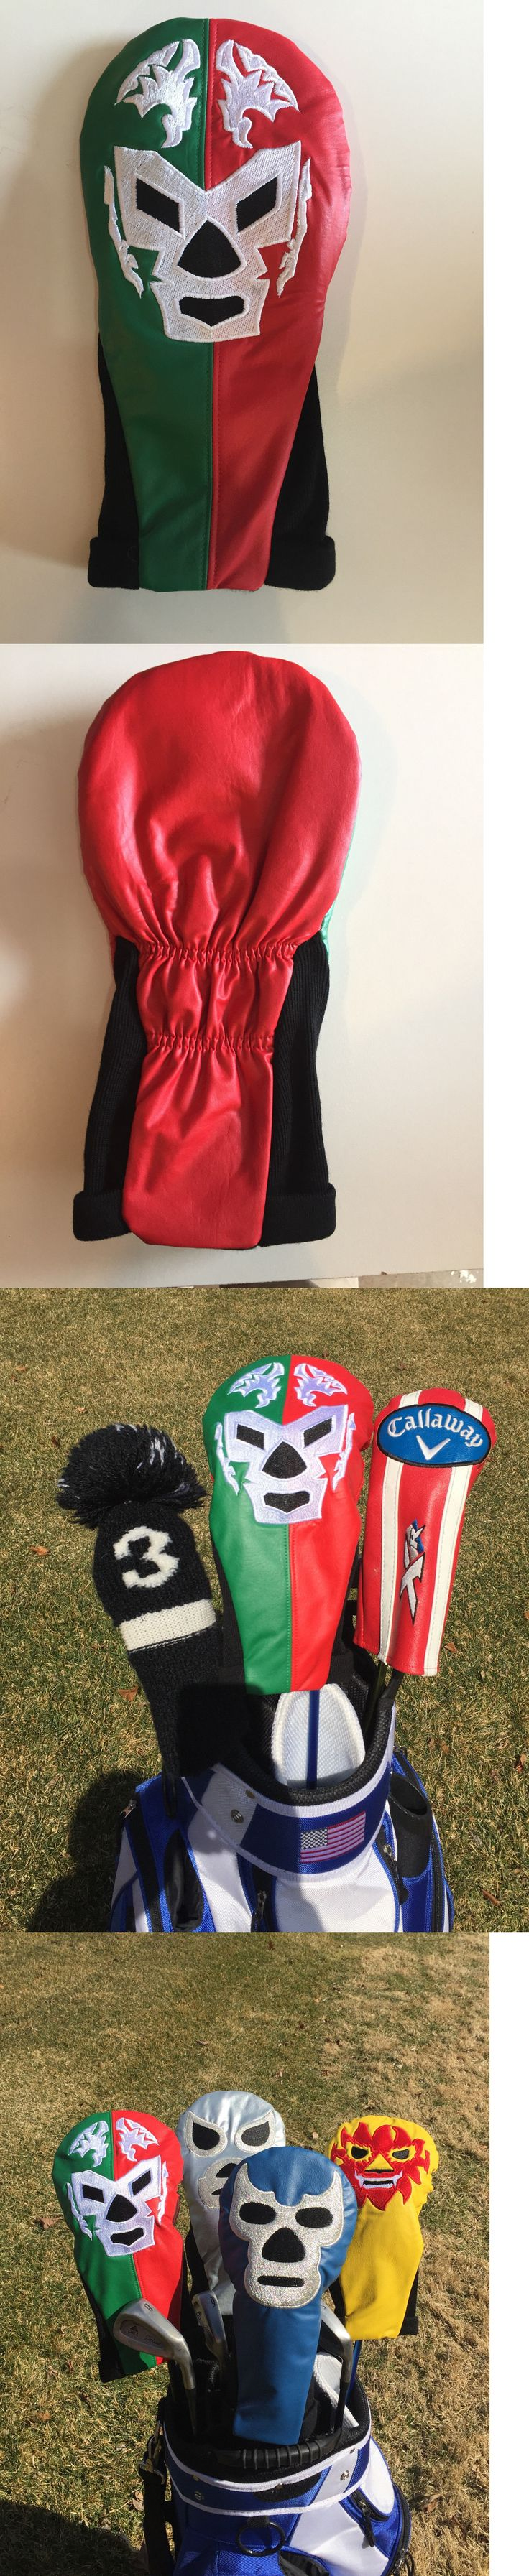 Club Head Covers 18930: Driver Headcover Mexican Wrestler Mask Taylormade Callaway Ping Cobra Titleist -> BUY IT NOW ONLY: $37.0 on eBay!